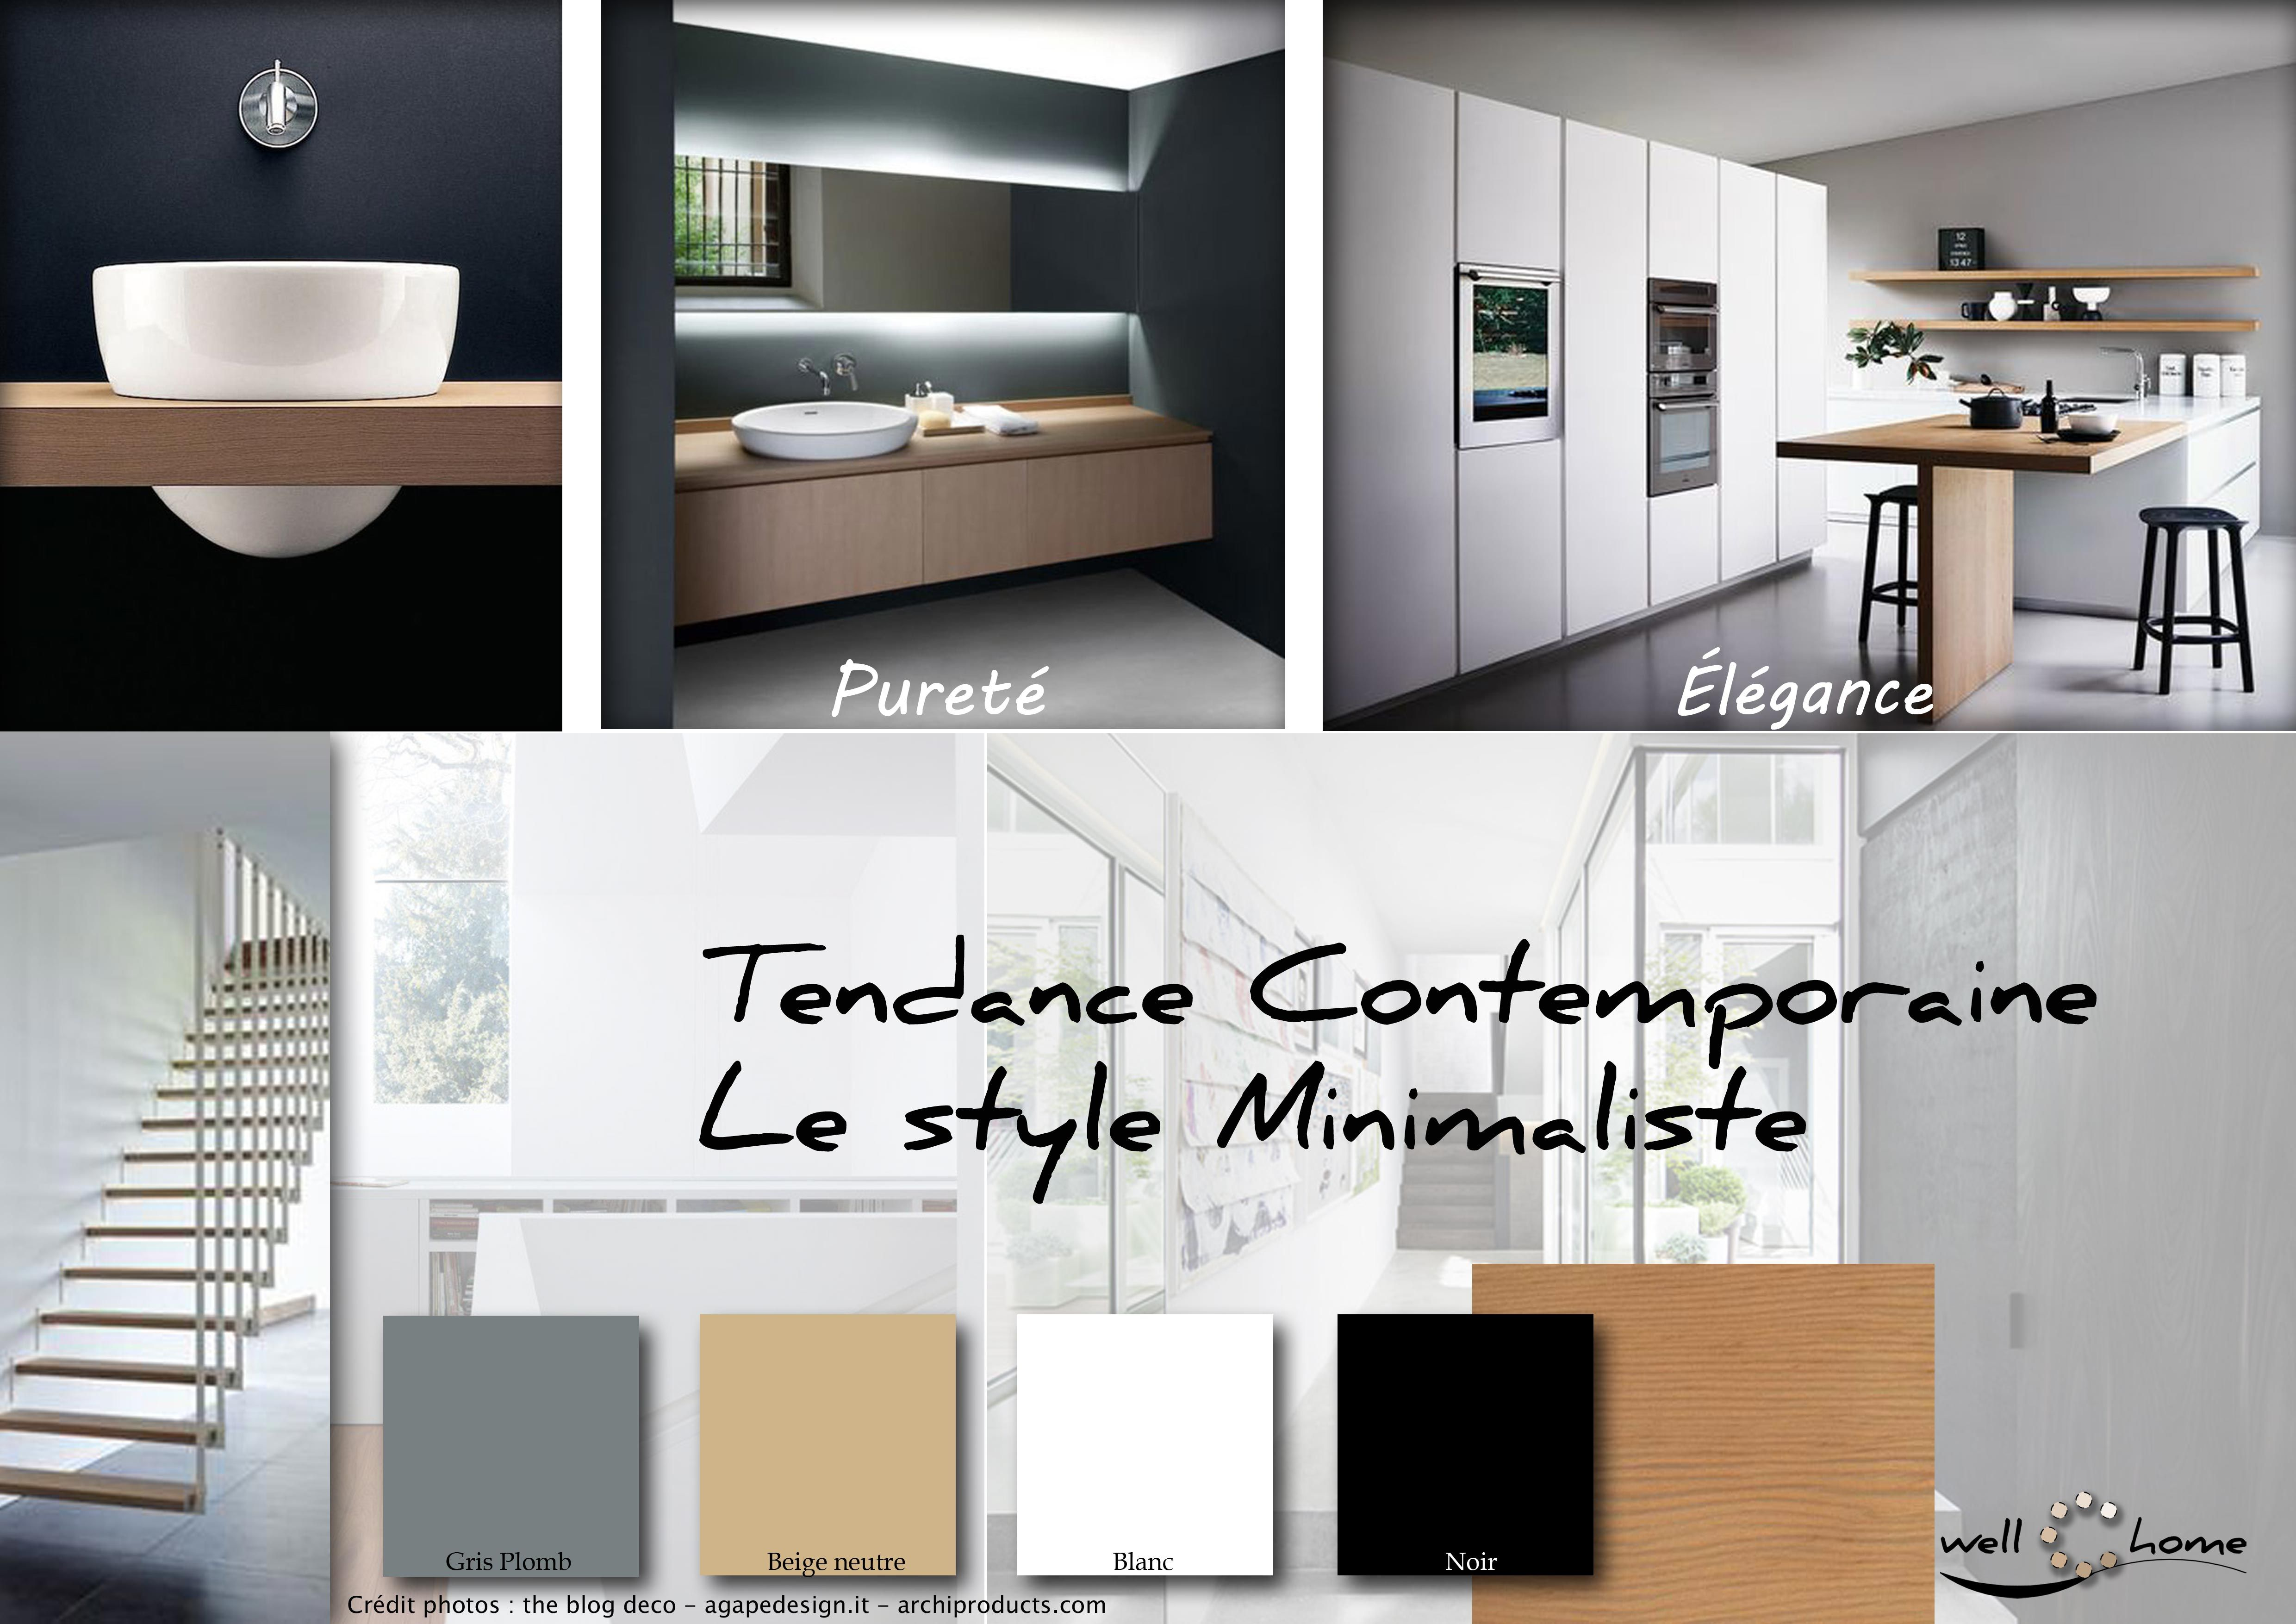 moodboard deco planche d ambiance tendance contemporaine style minimaliste realisation well c home